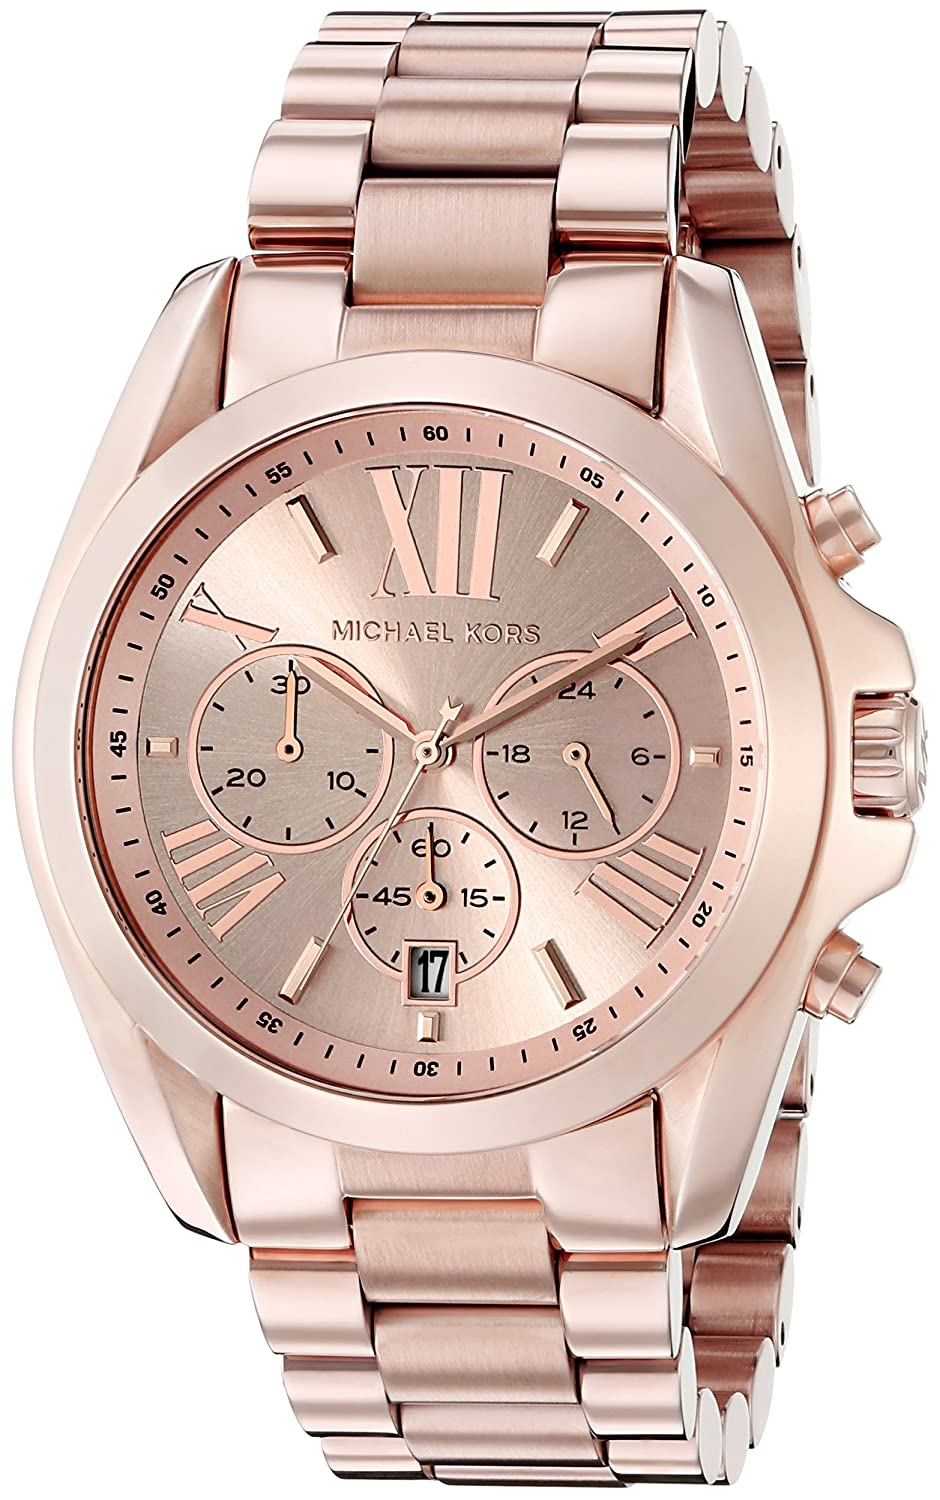 michael kors bradshaw chronograph rose gold tone watch. Black Bedroom Furniture Sets. Home Design Ideas